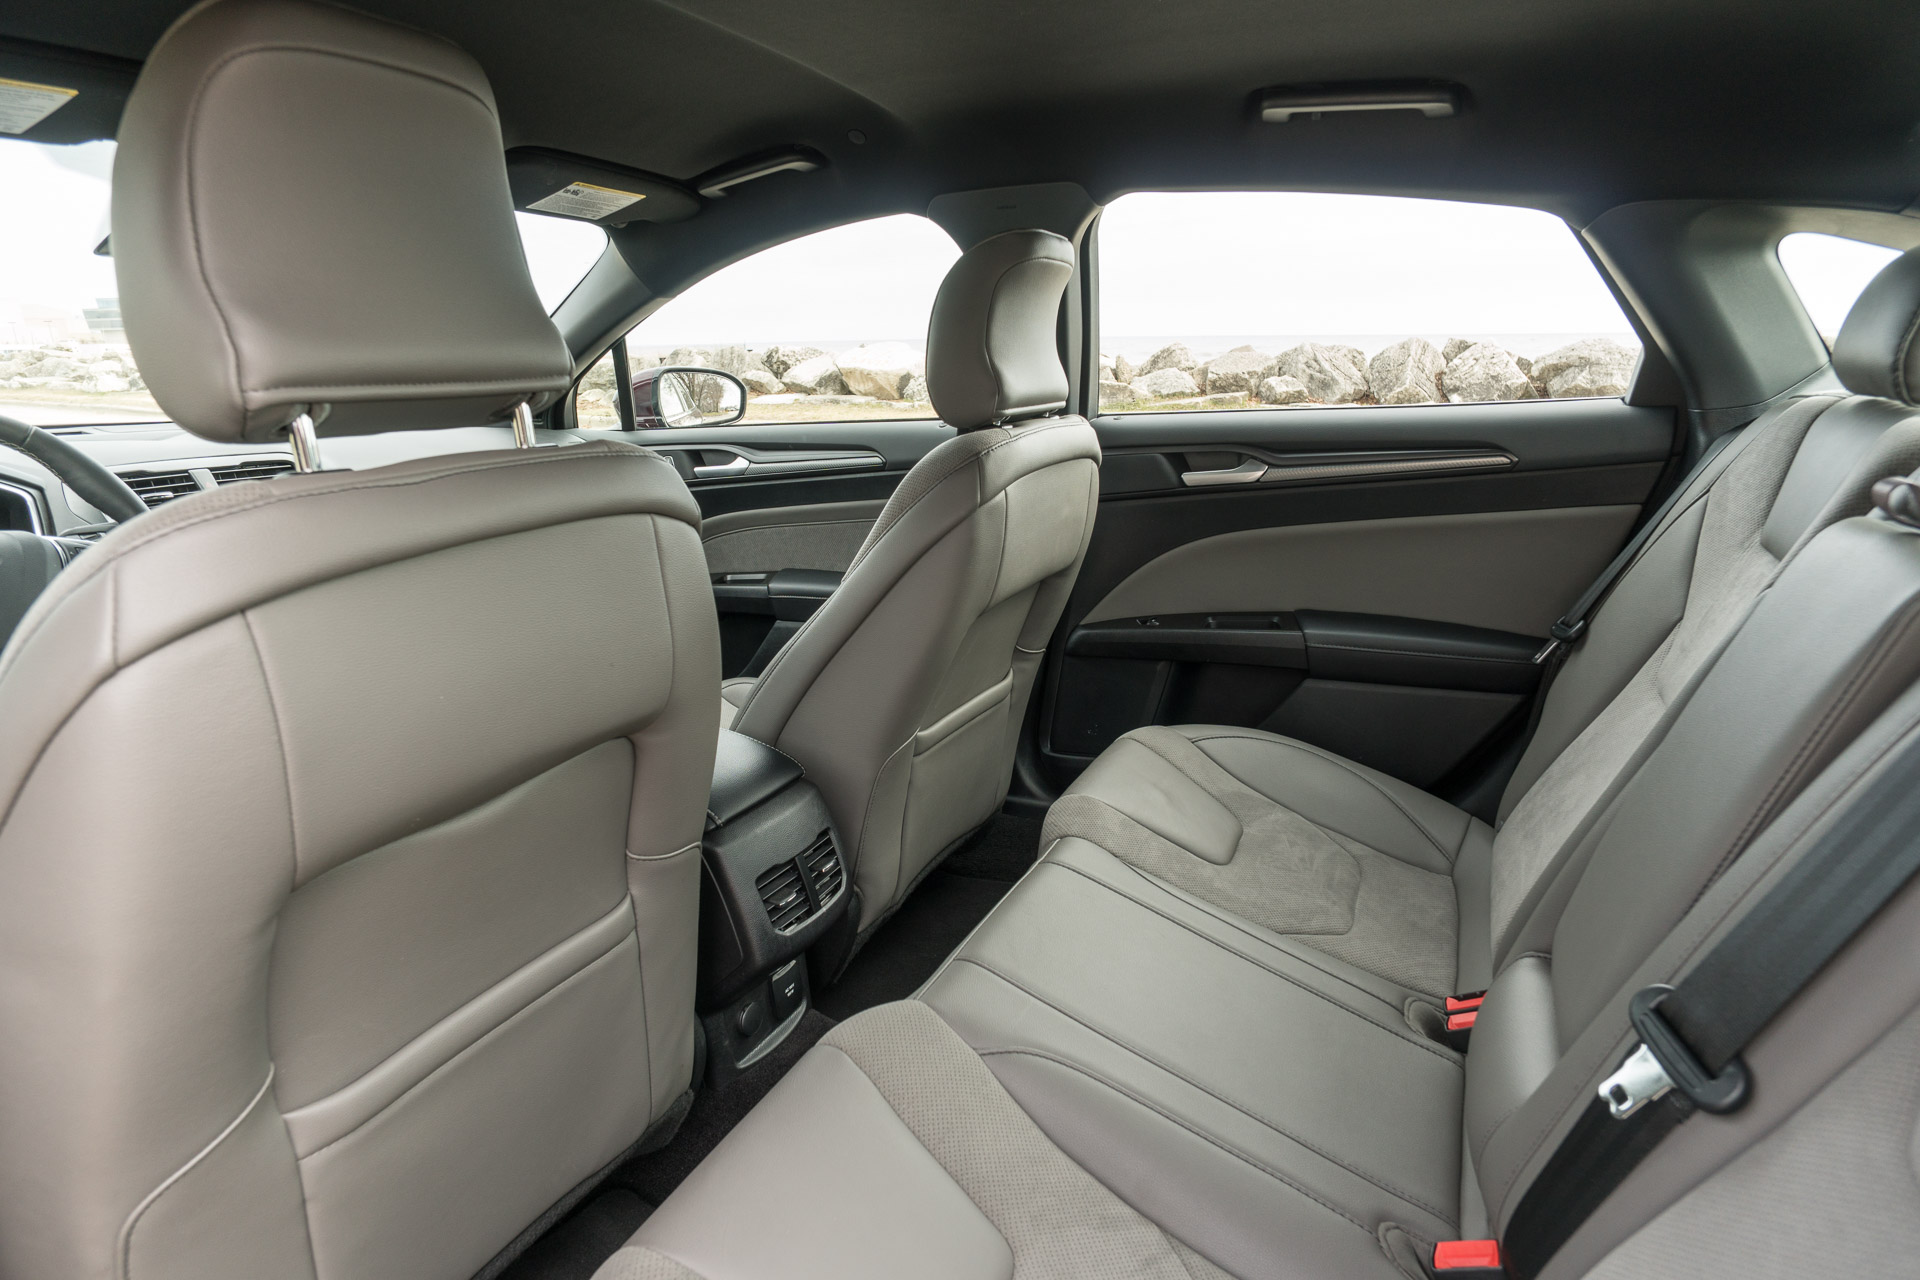 The Rear Seats Offer Ample Legroom And Headroom Can Be Folded In A 60 40 Configuration To Expand Cargo Capacity Above Trunk S Standard 16 Cubic